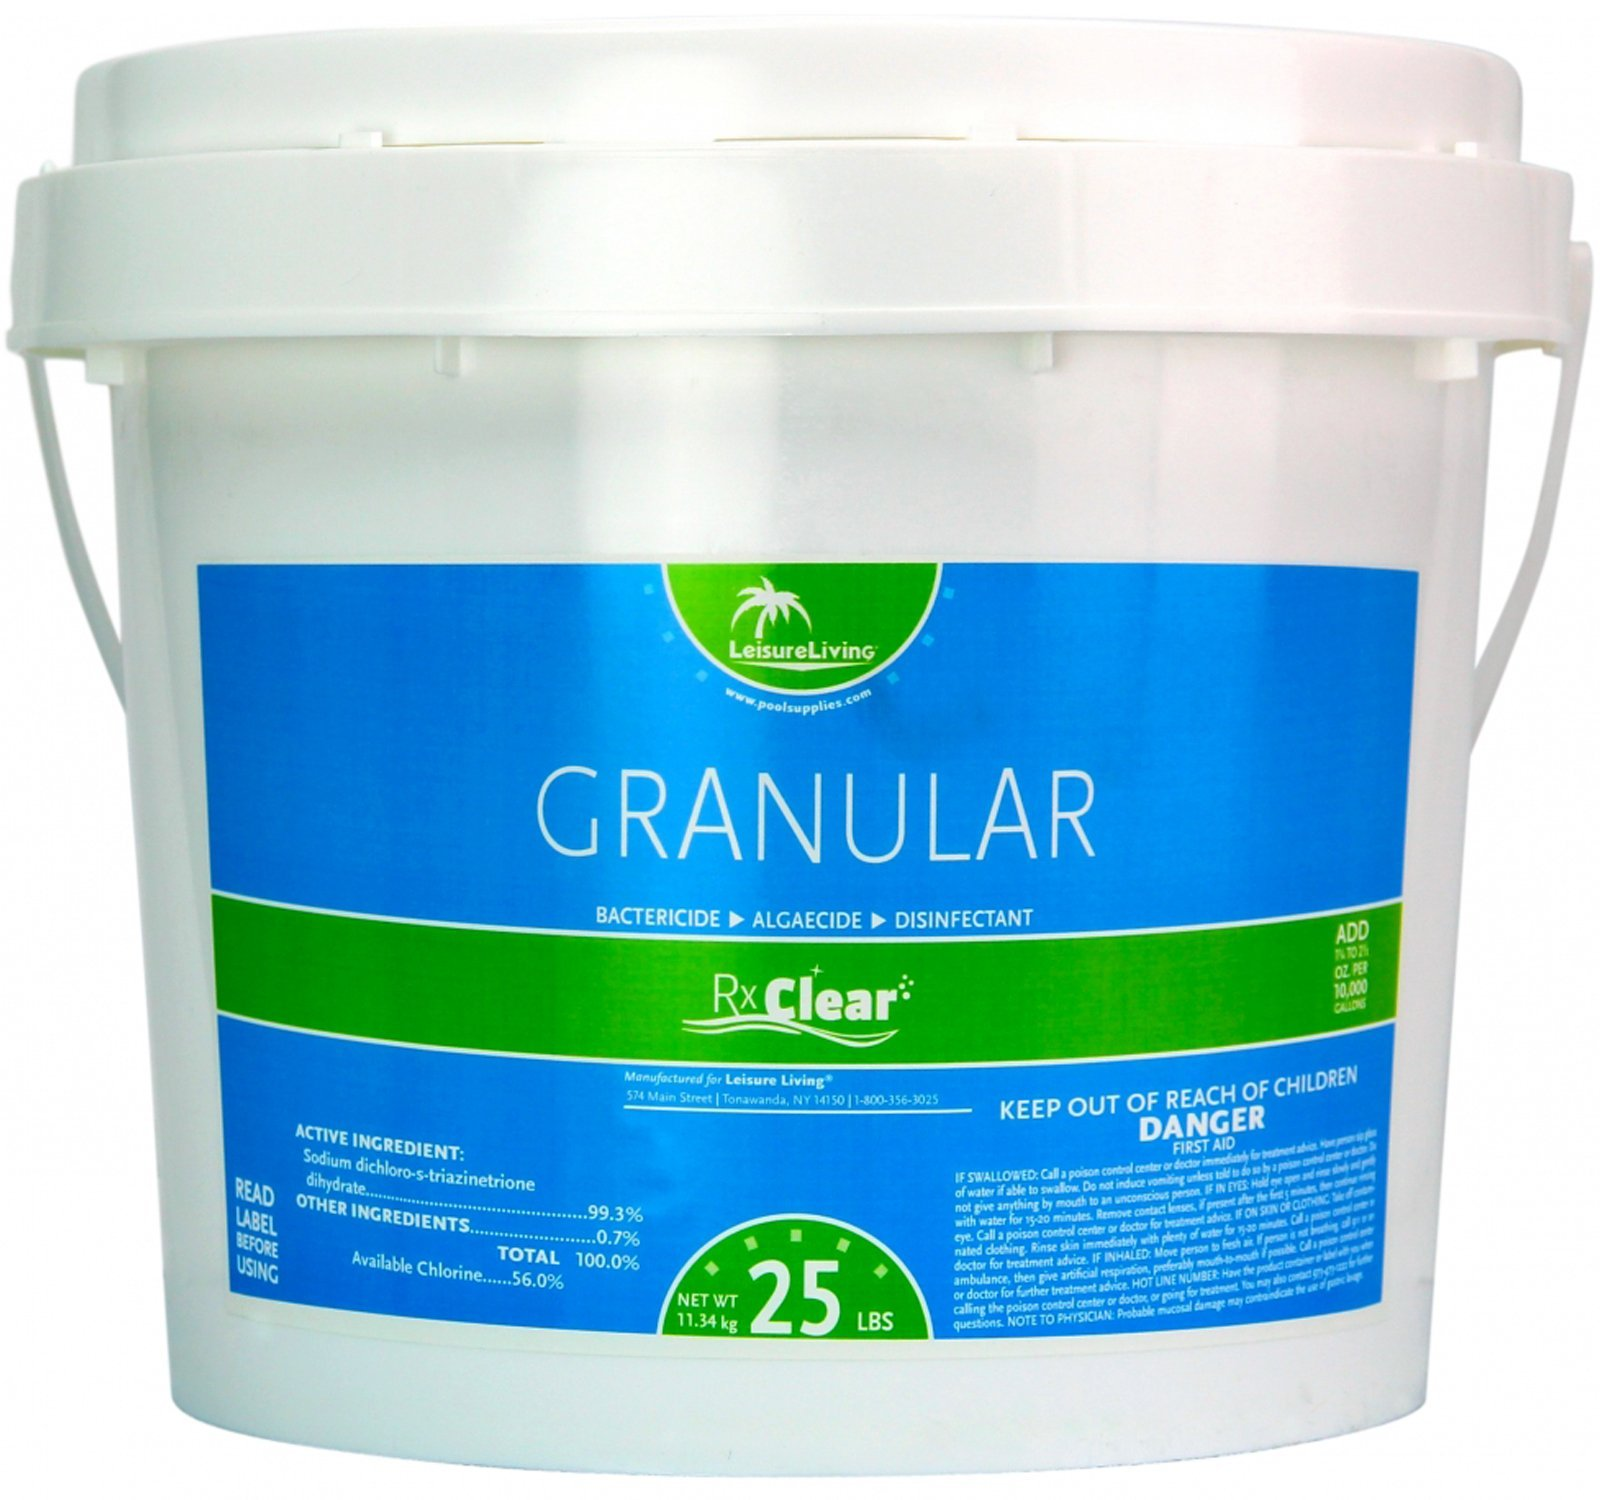 Rx Clear Stabilized Granular Chlorine | One 25-Pound Bucket | Use As Bactericide, Algaecide, and Disinfectant in Swimming Pools and Spas | Slow Dissolving and UV Protected by Rx Clear